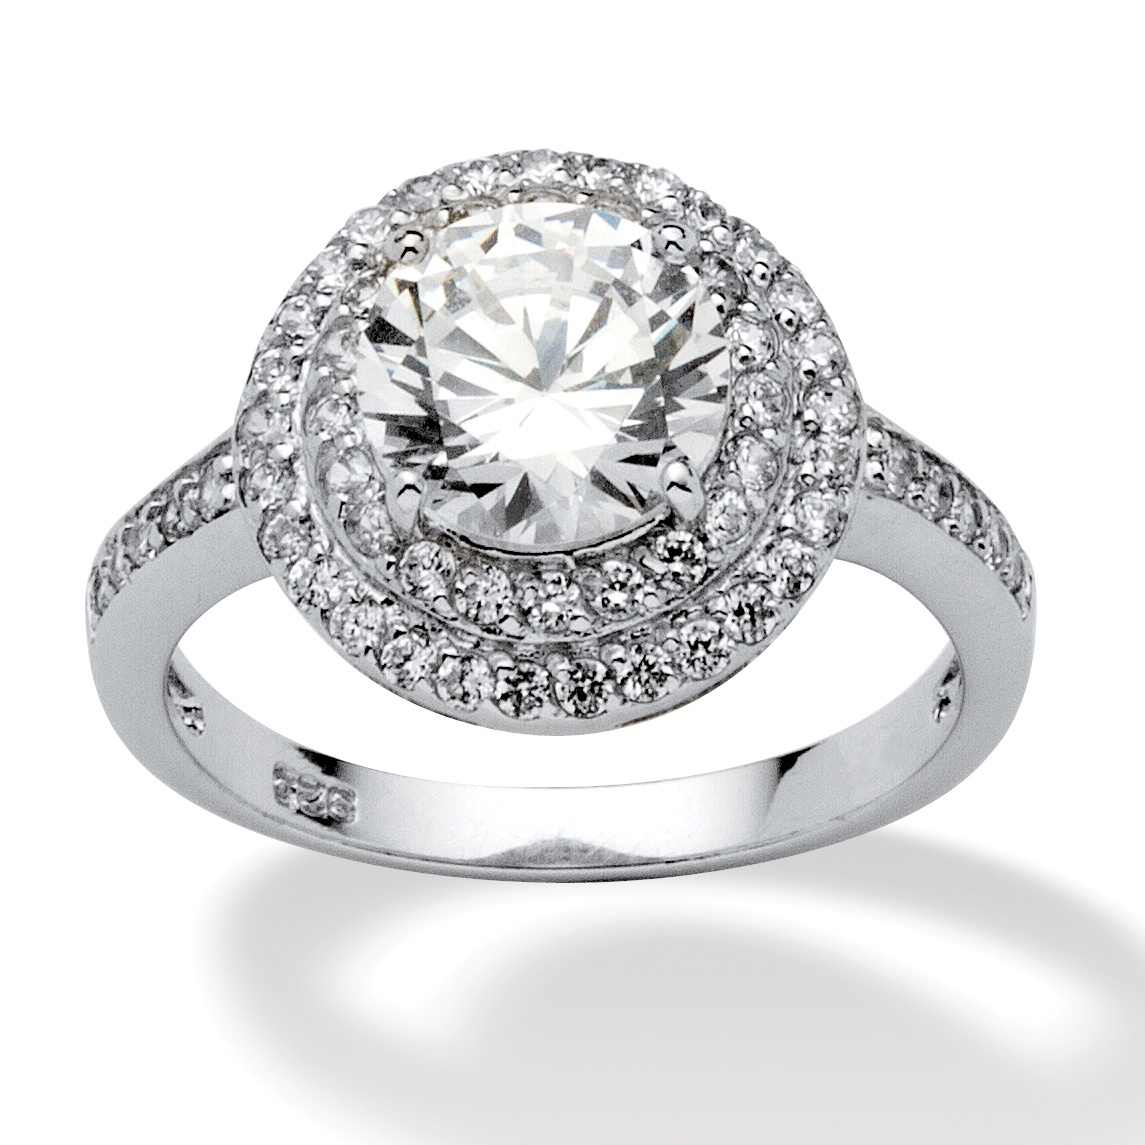 Platinum Over Sterling Silver Round DiamonUltra Trade Cubic Zirconia Ring | eBay